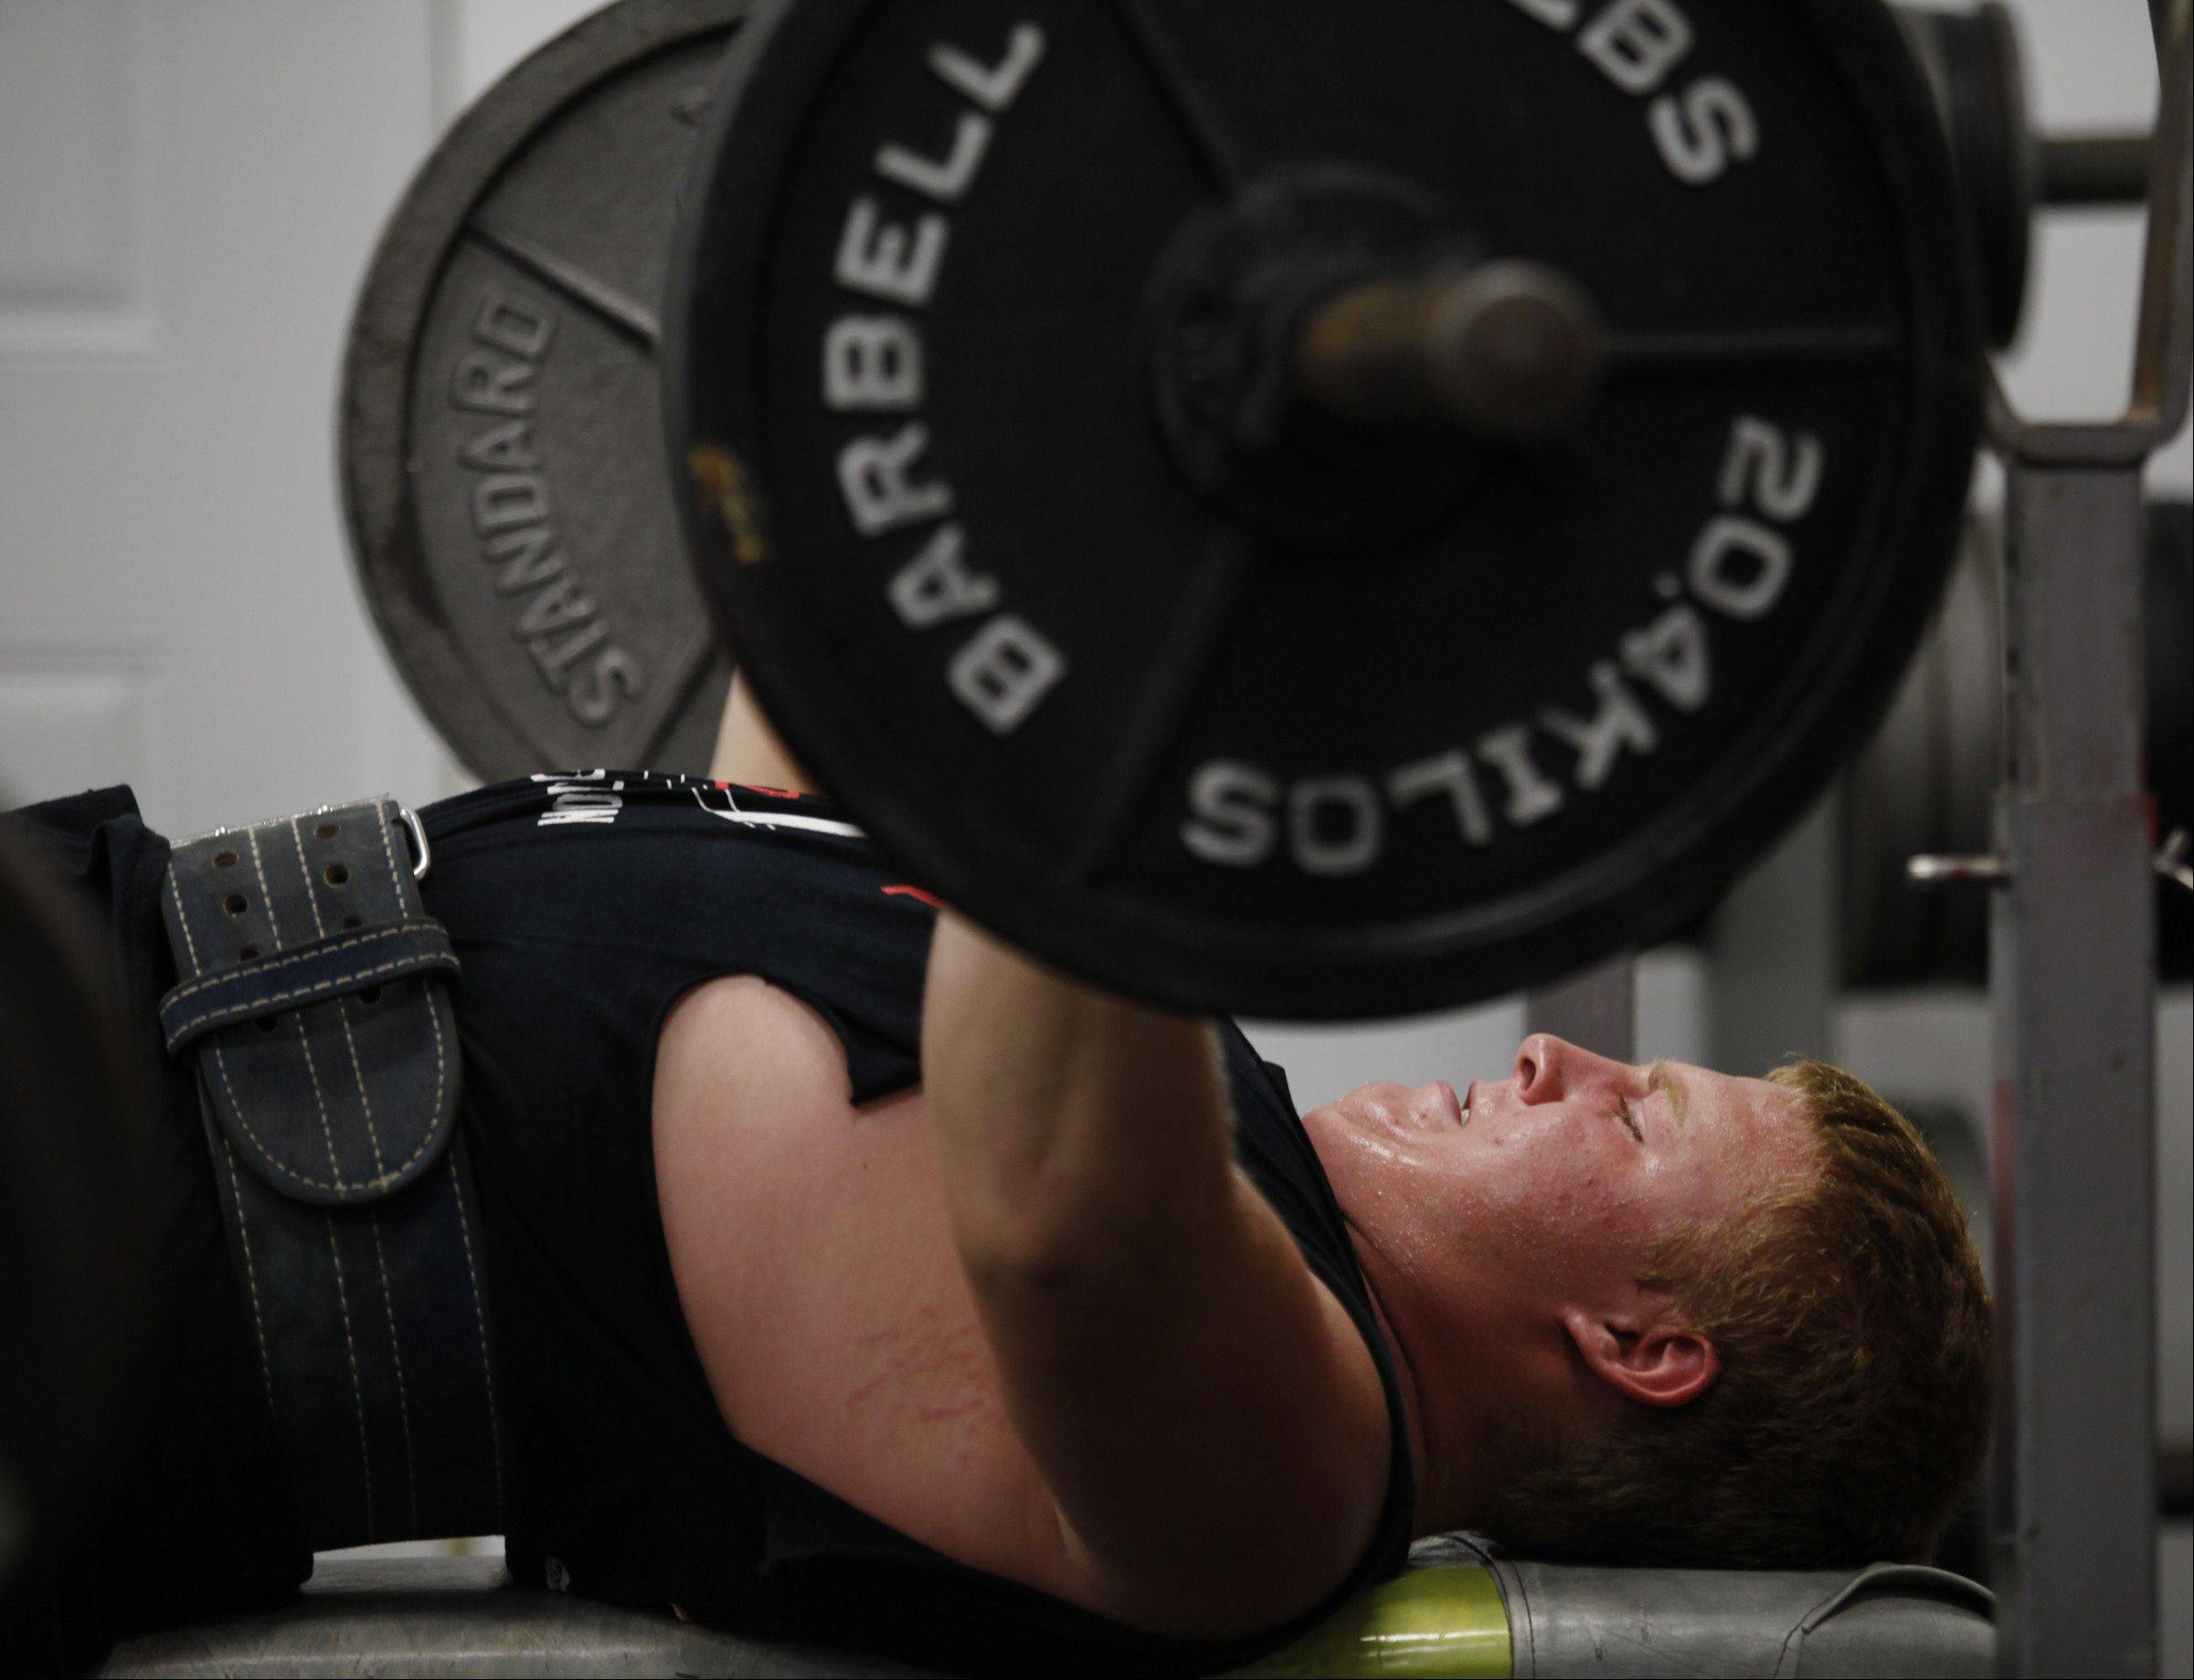 Dominic Swanson, pictured before his trip to the world championships in Prague, bench presses 225 pounds during a workout at his home in Union.